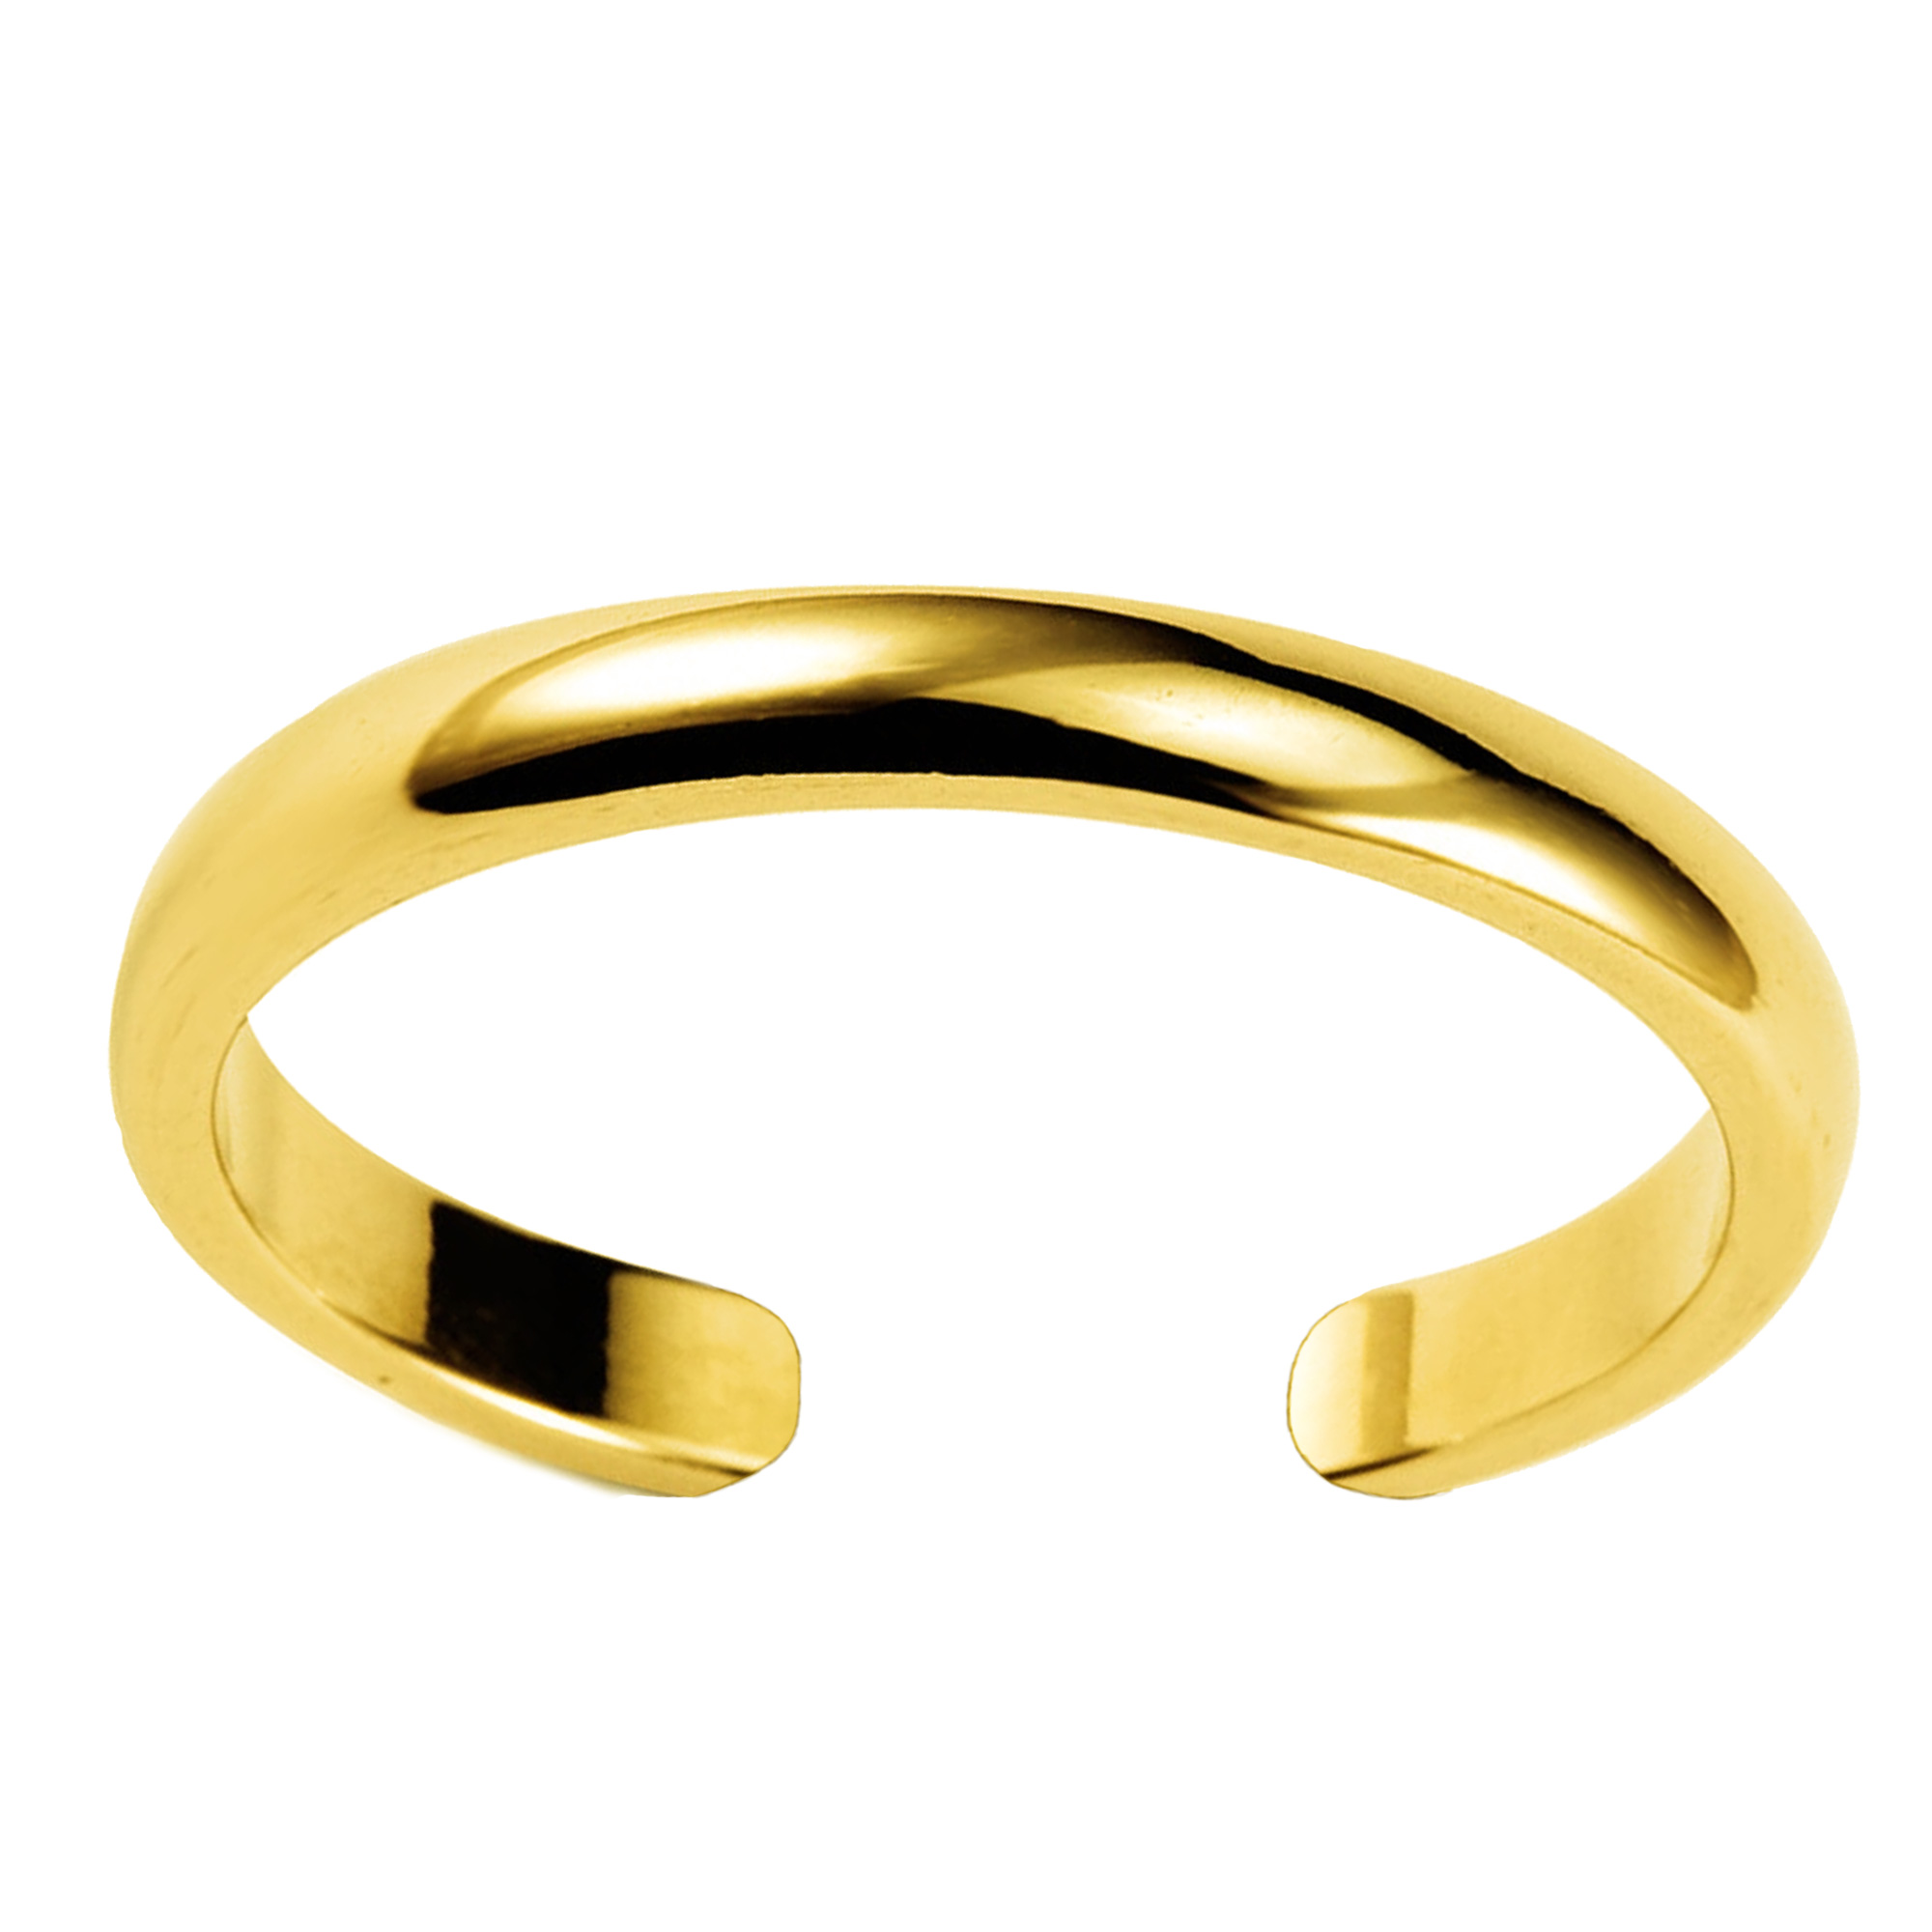 14K Yellow Gold Shiny Cuff Style Adjustable Toe Ring 3mm Whether you're barefoot or in sandals, put your best foot forward and tip your toes with this adorable toe ring. Made with 14K Yellow gold in a high polish finish, this cuff style adjustable toe ring will make a great addition to anyone's jewelry collection.